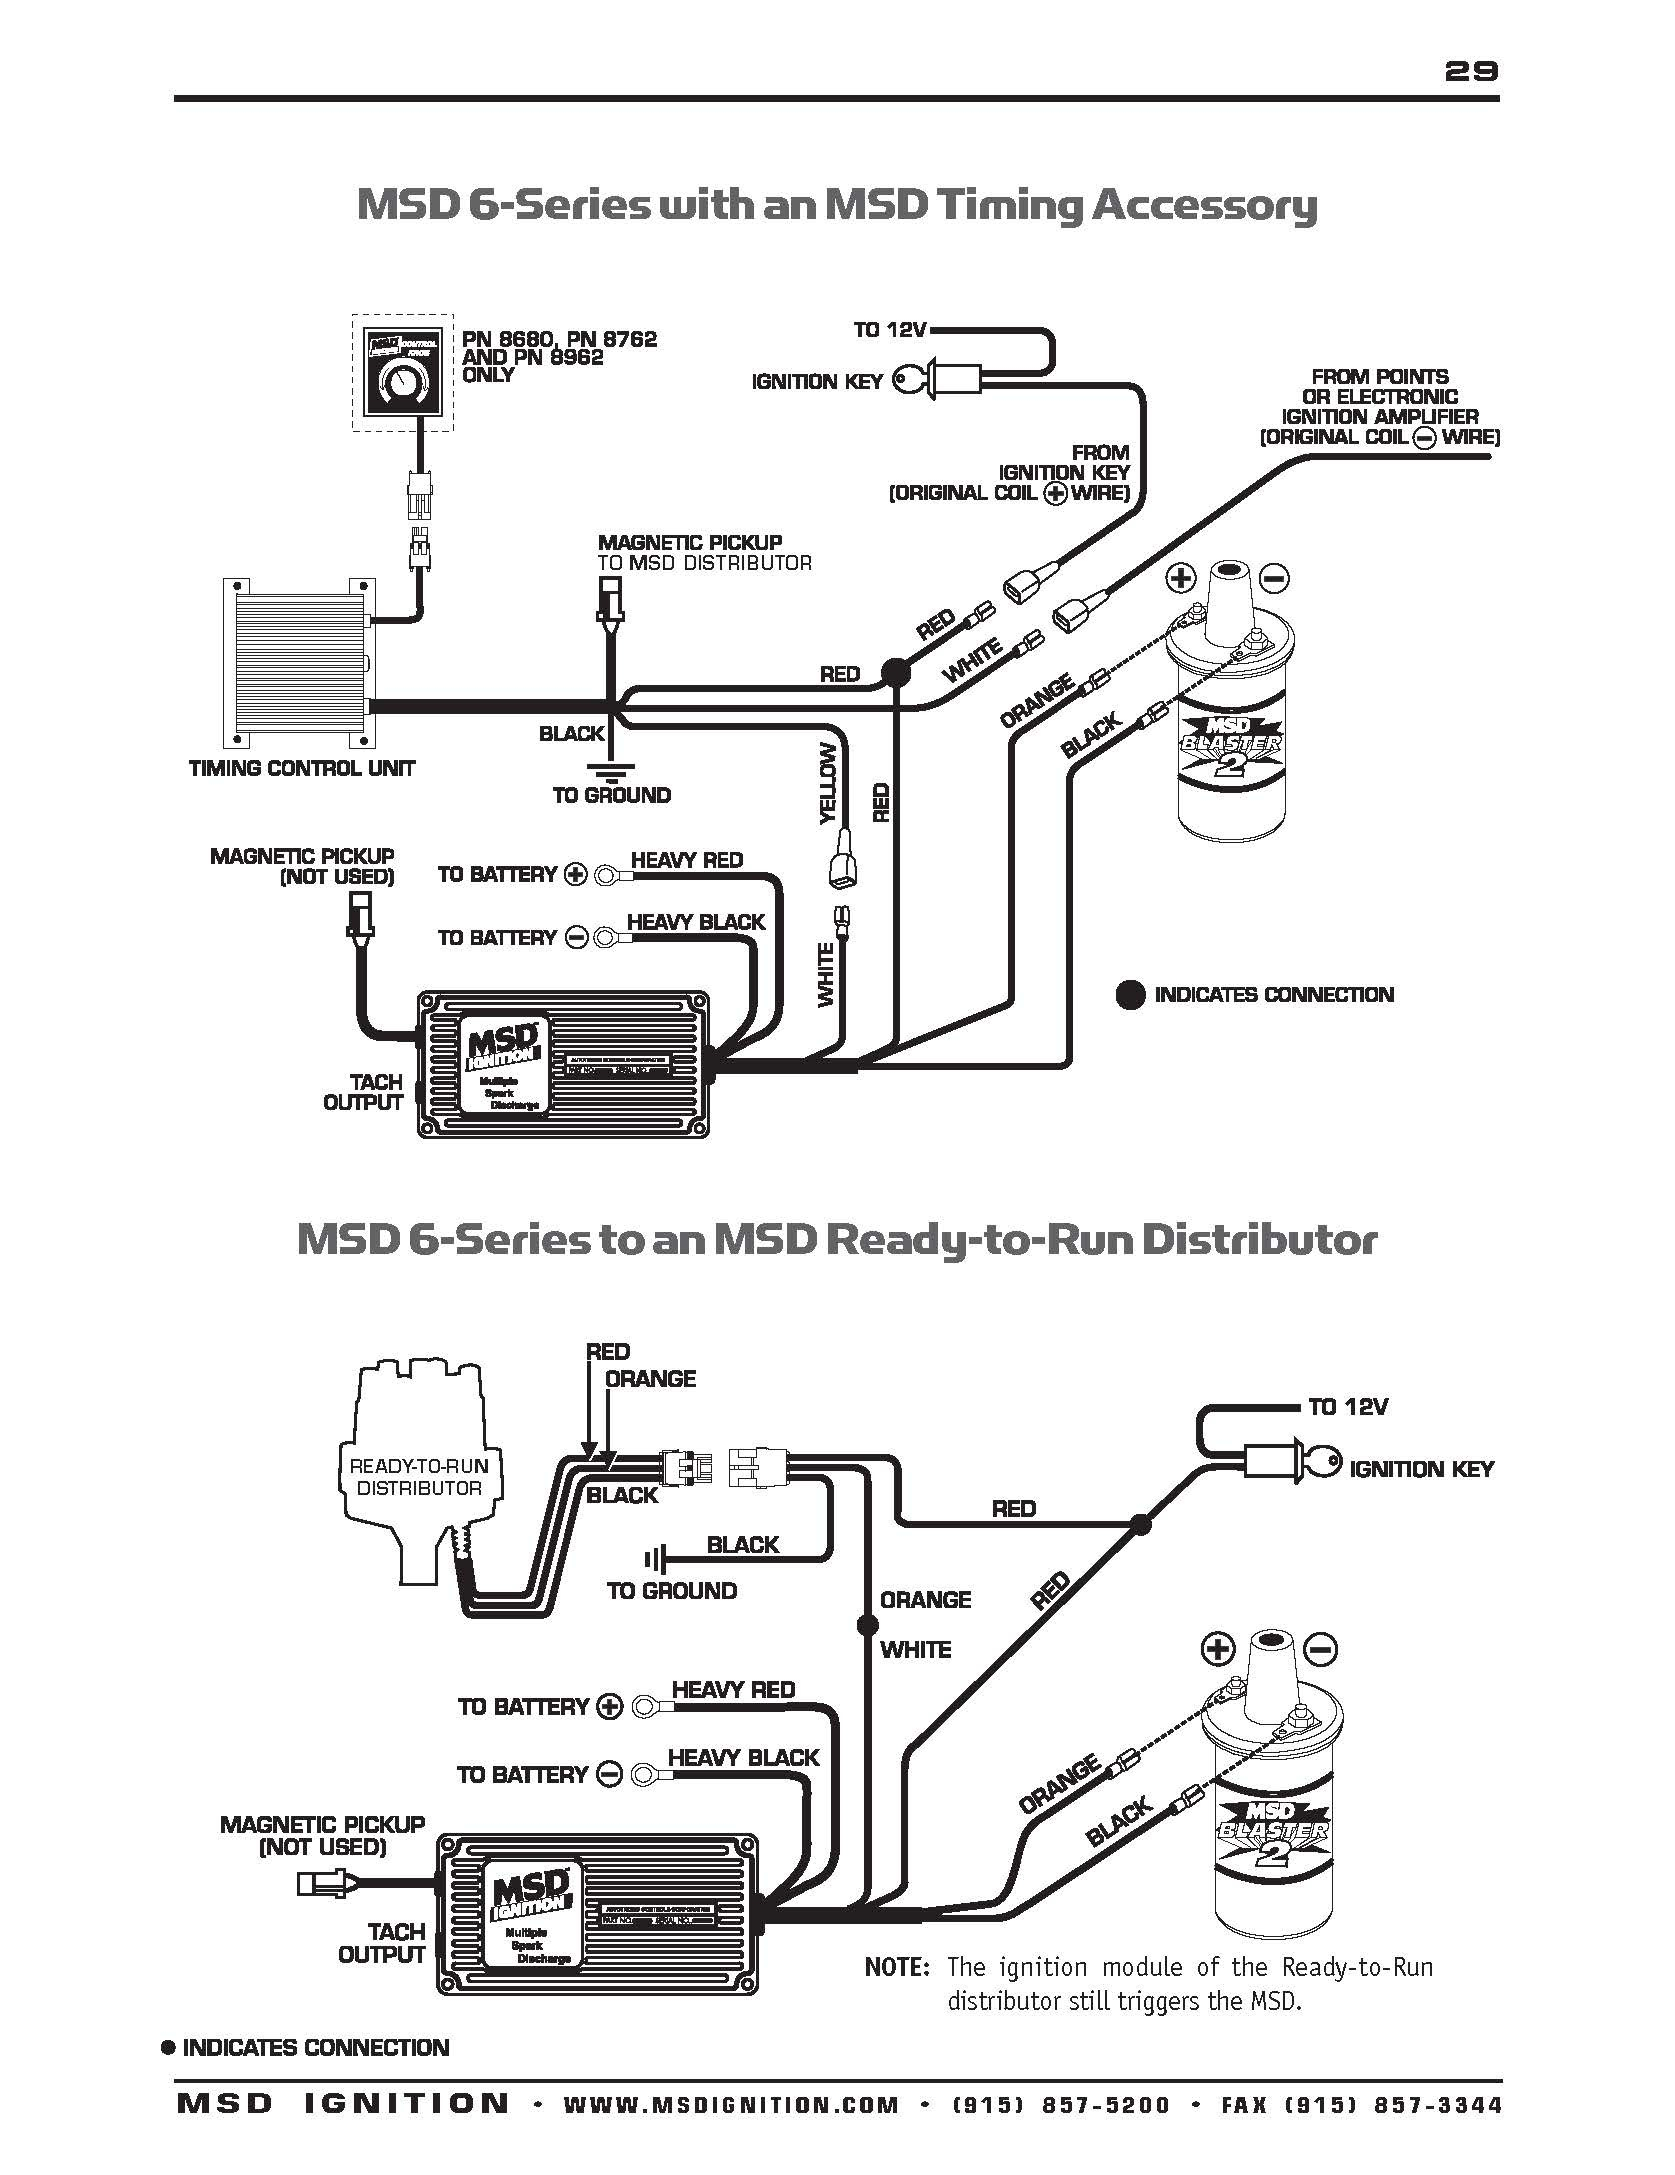 msd 6btm wiring diagram Download-Msd Ignition Wiring Diagram Best Msd 6btm Wiring Diagram Wiring Diagram 19-n